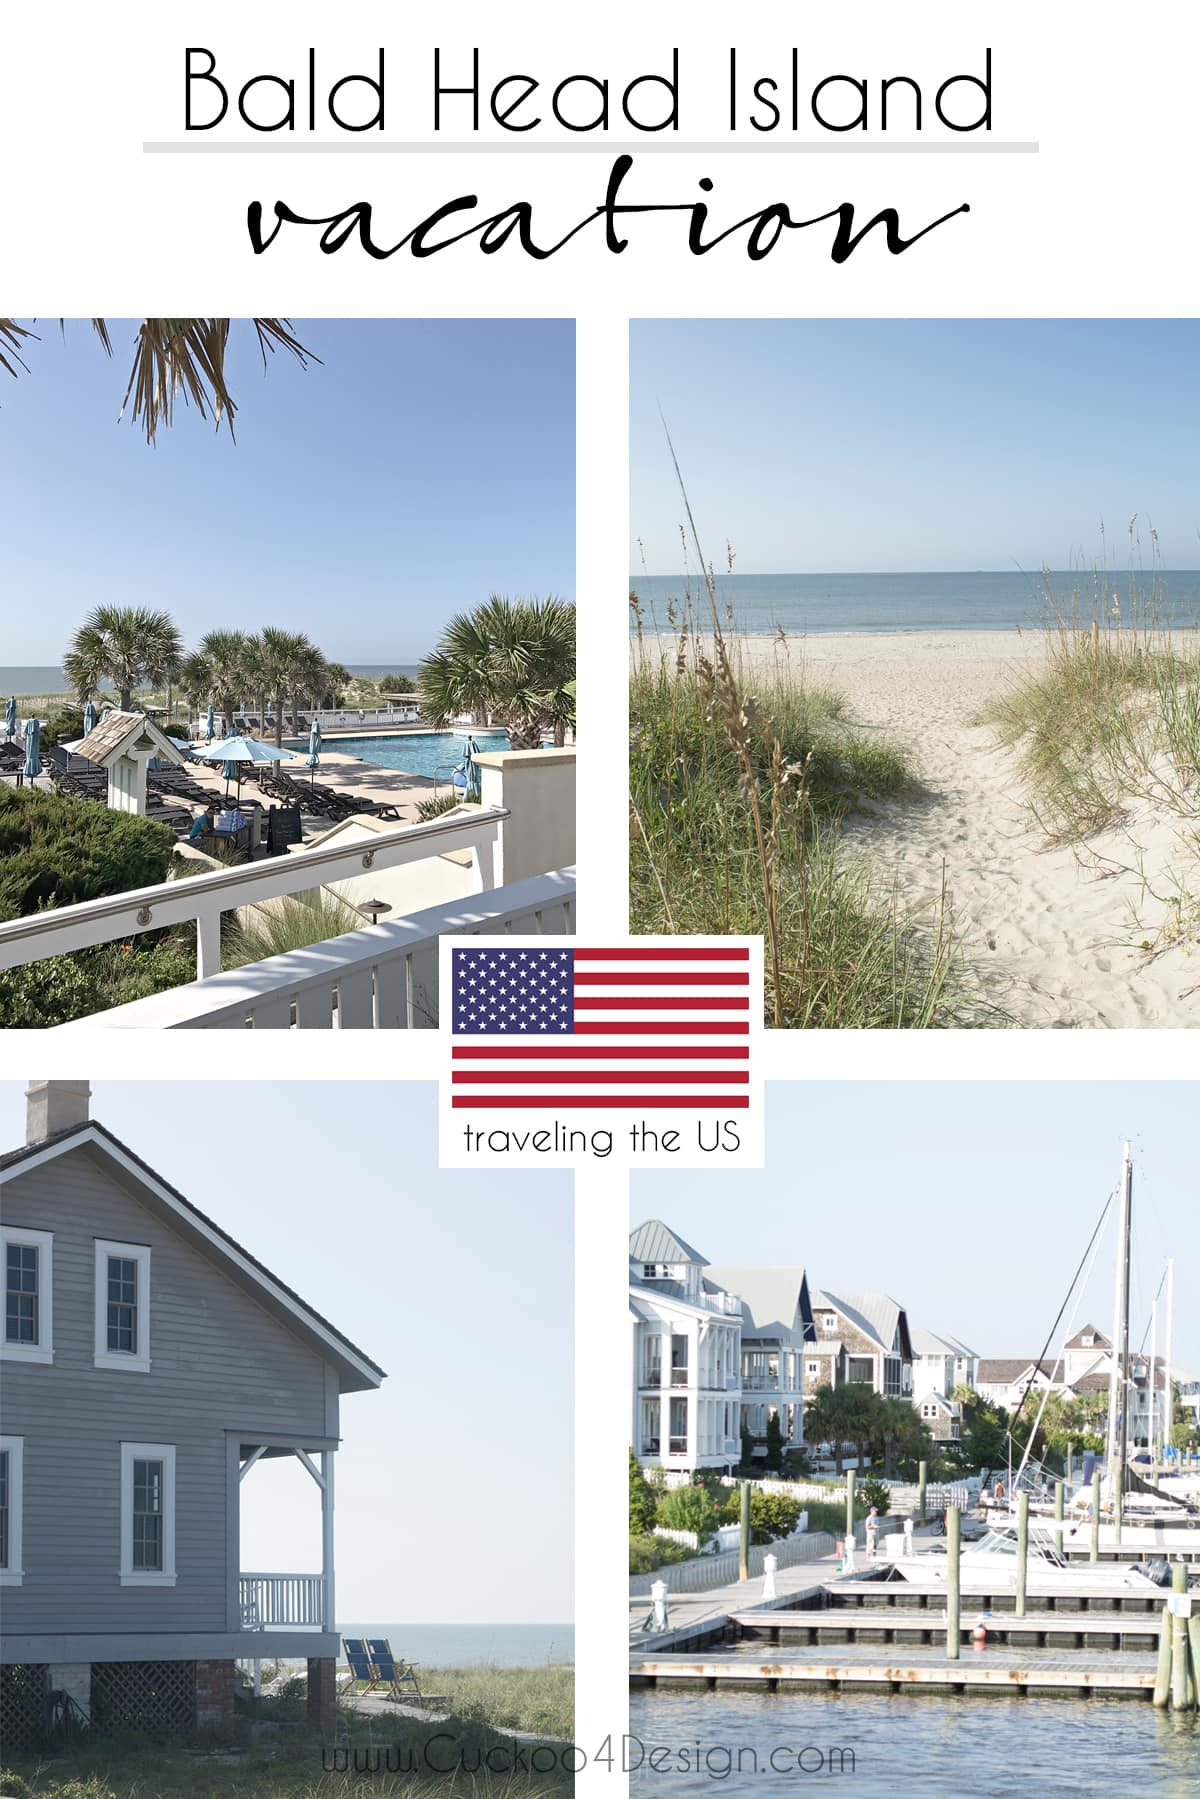 beautiful travel spots in the United States | Bald Head Island North Carolina | US Islands | Island hopping | Island traveling